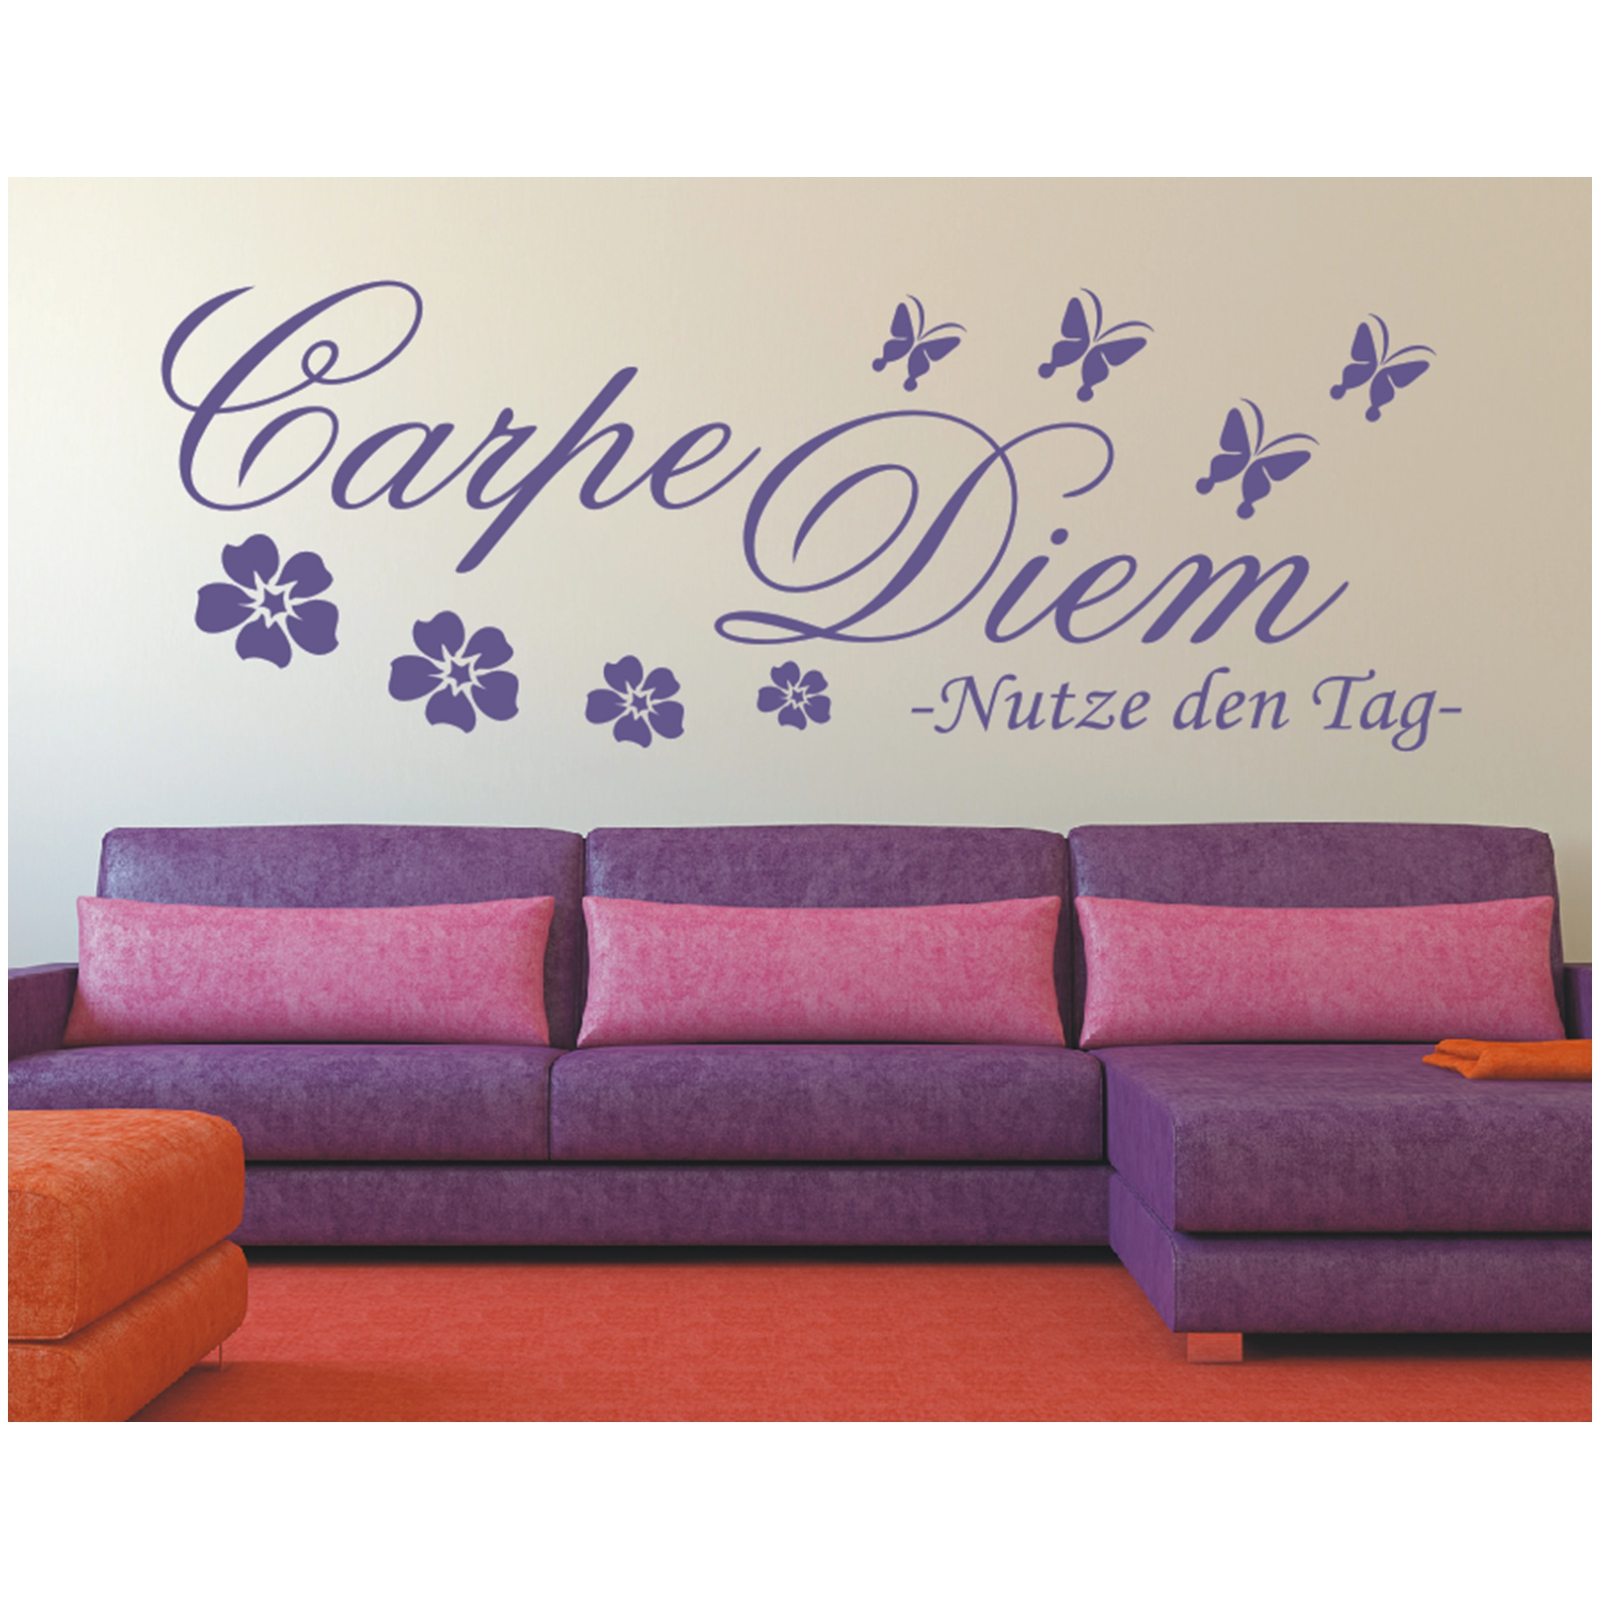 wandtattoo spruch carpe diem nutze den tag wandsticker. Black Bedroom Furniture Sets. Home Design Ideas